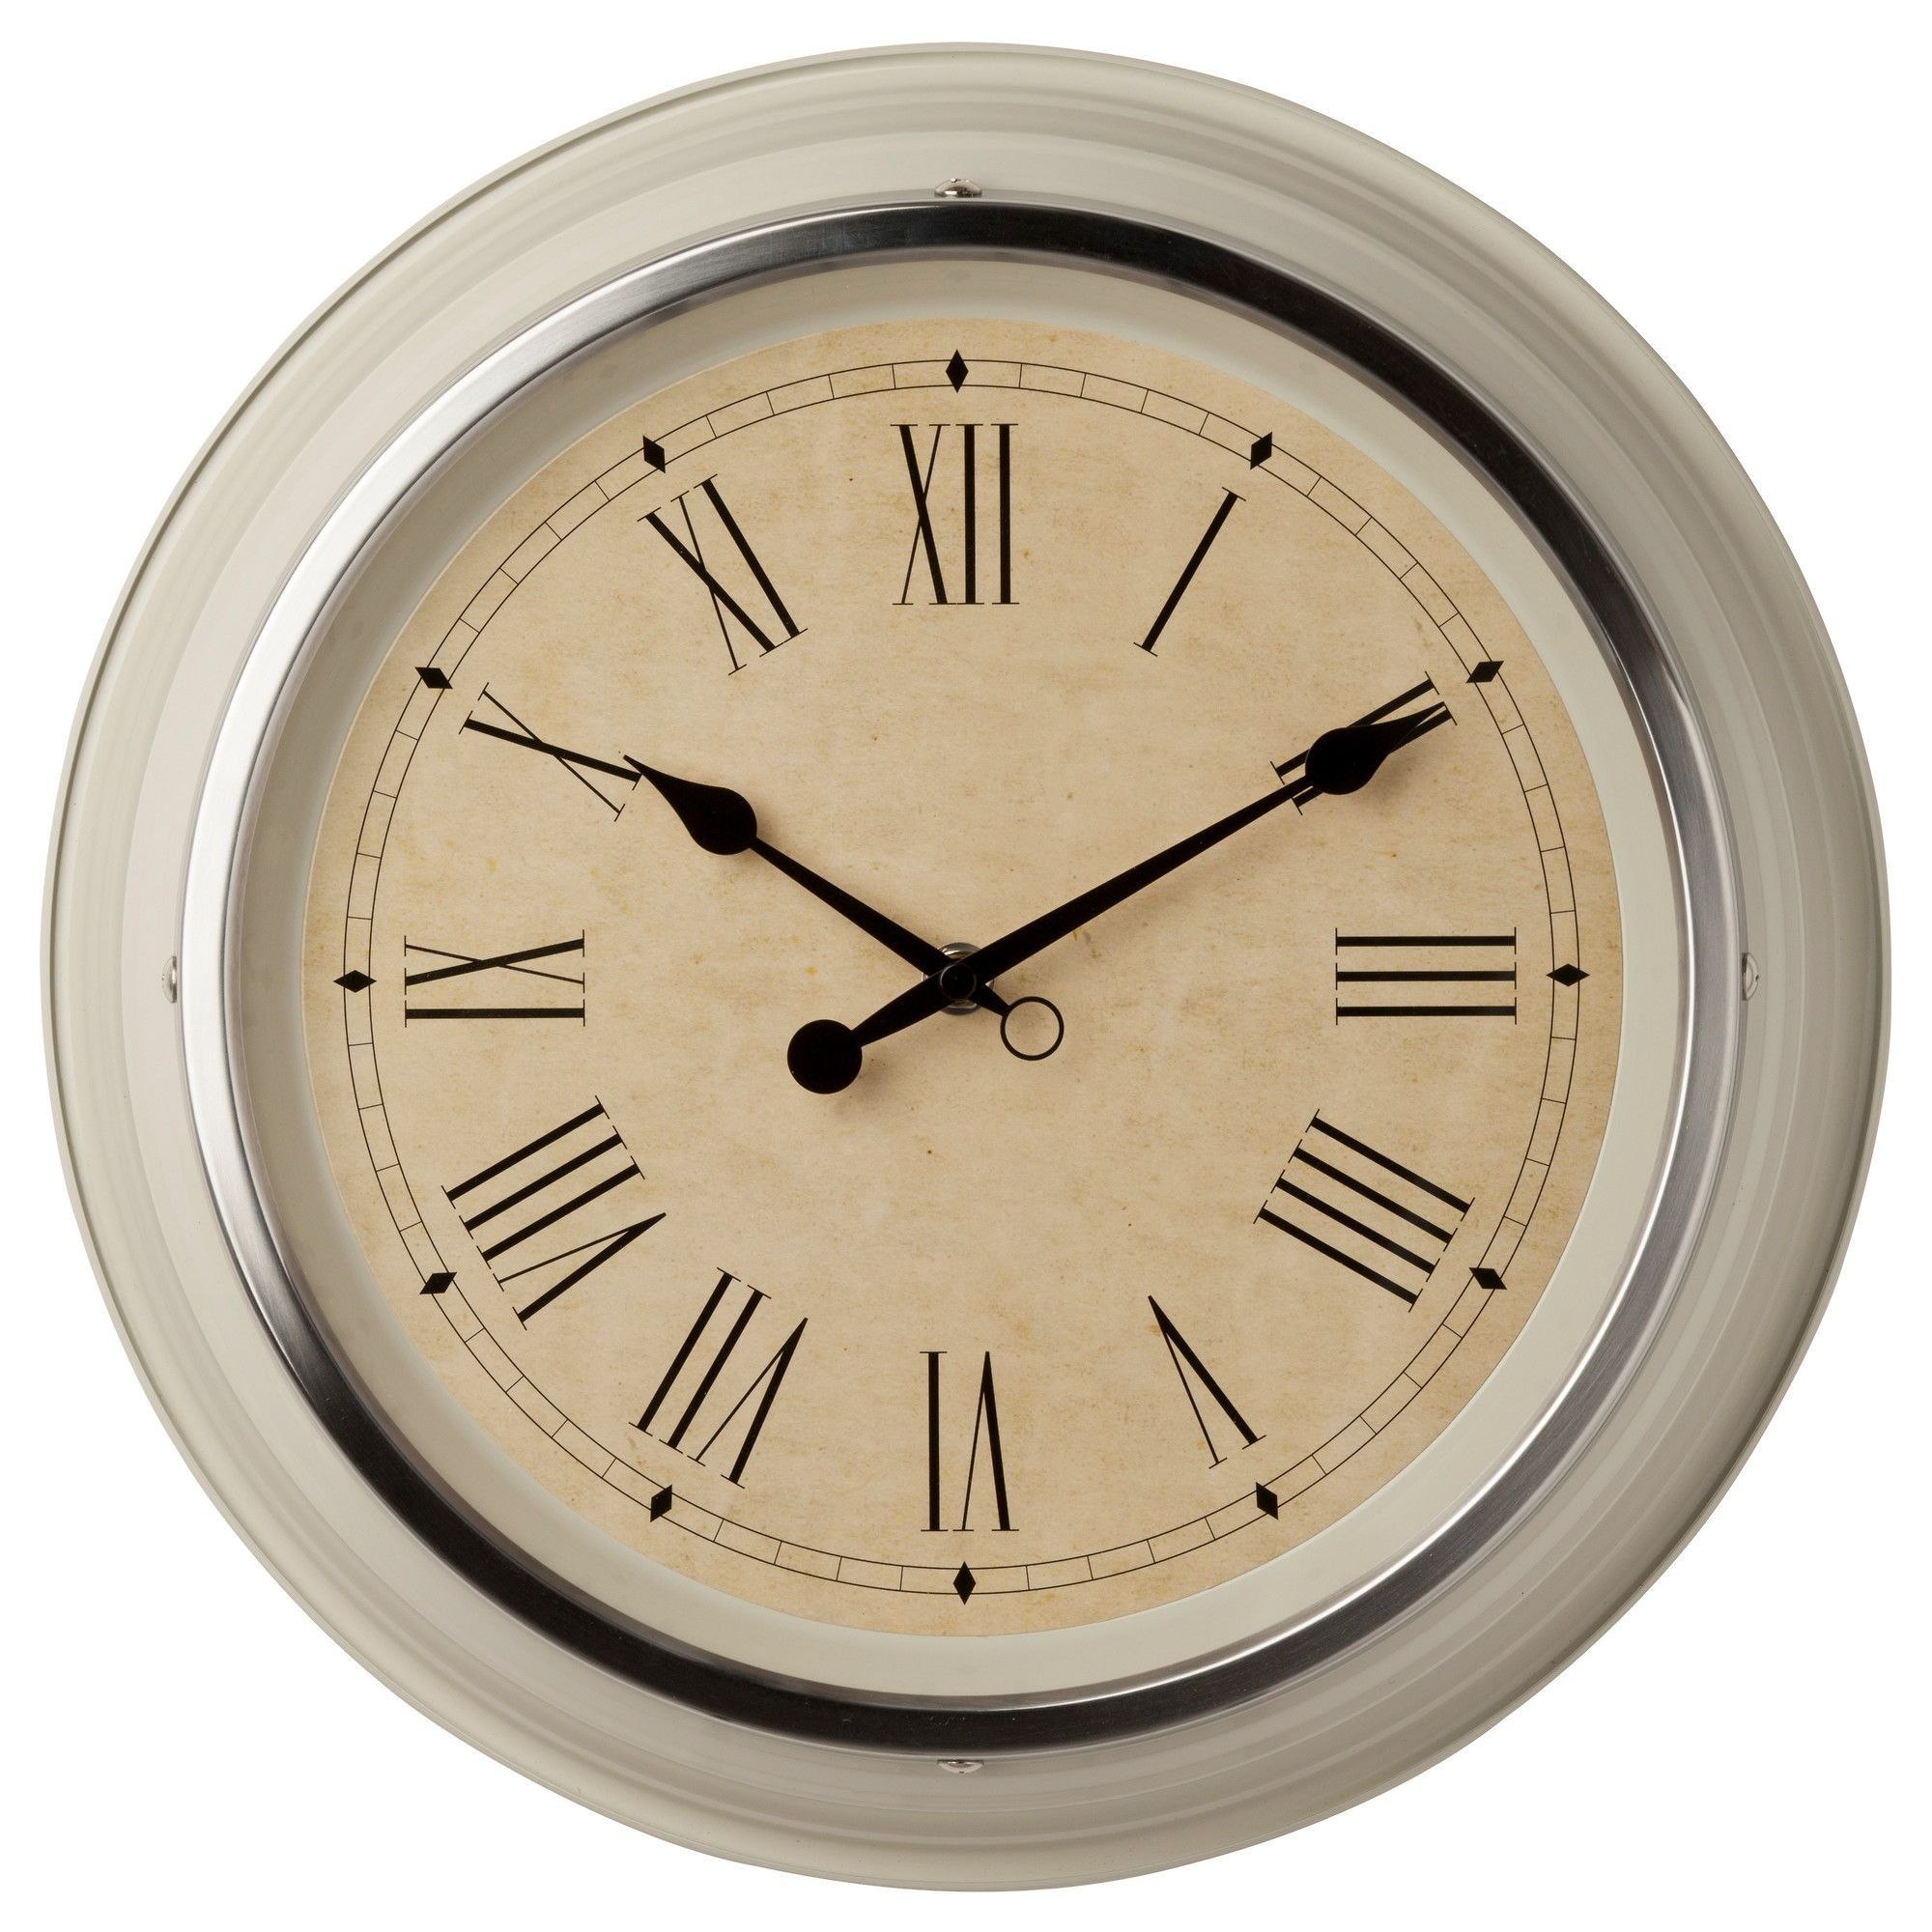 Explore Oversized Wall Clocks And More!